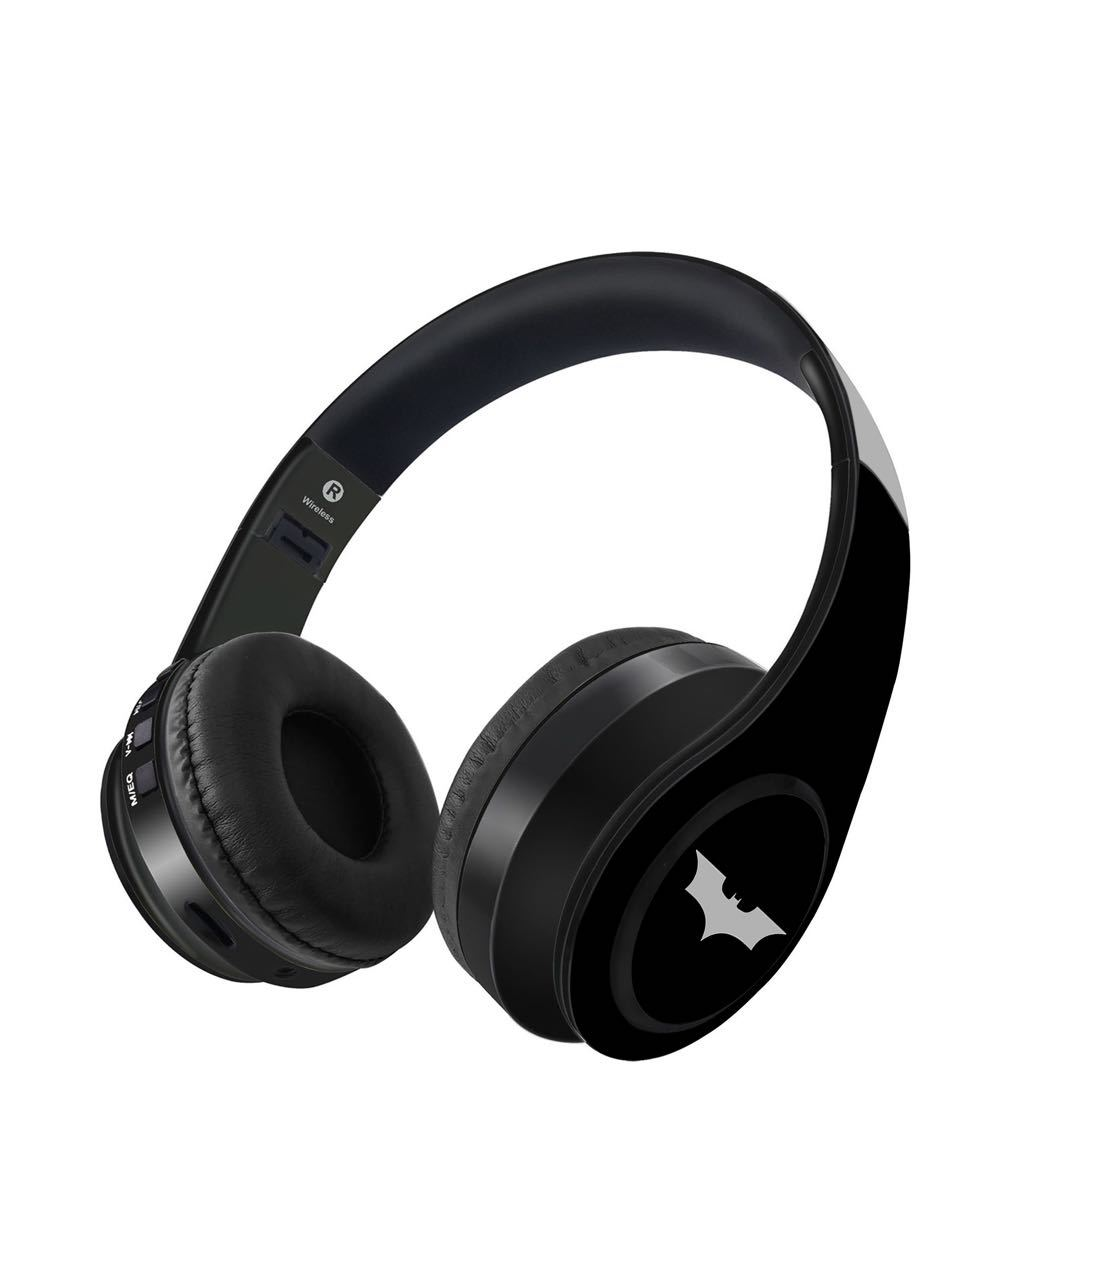 The Dark Knight Wireless Headphones